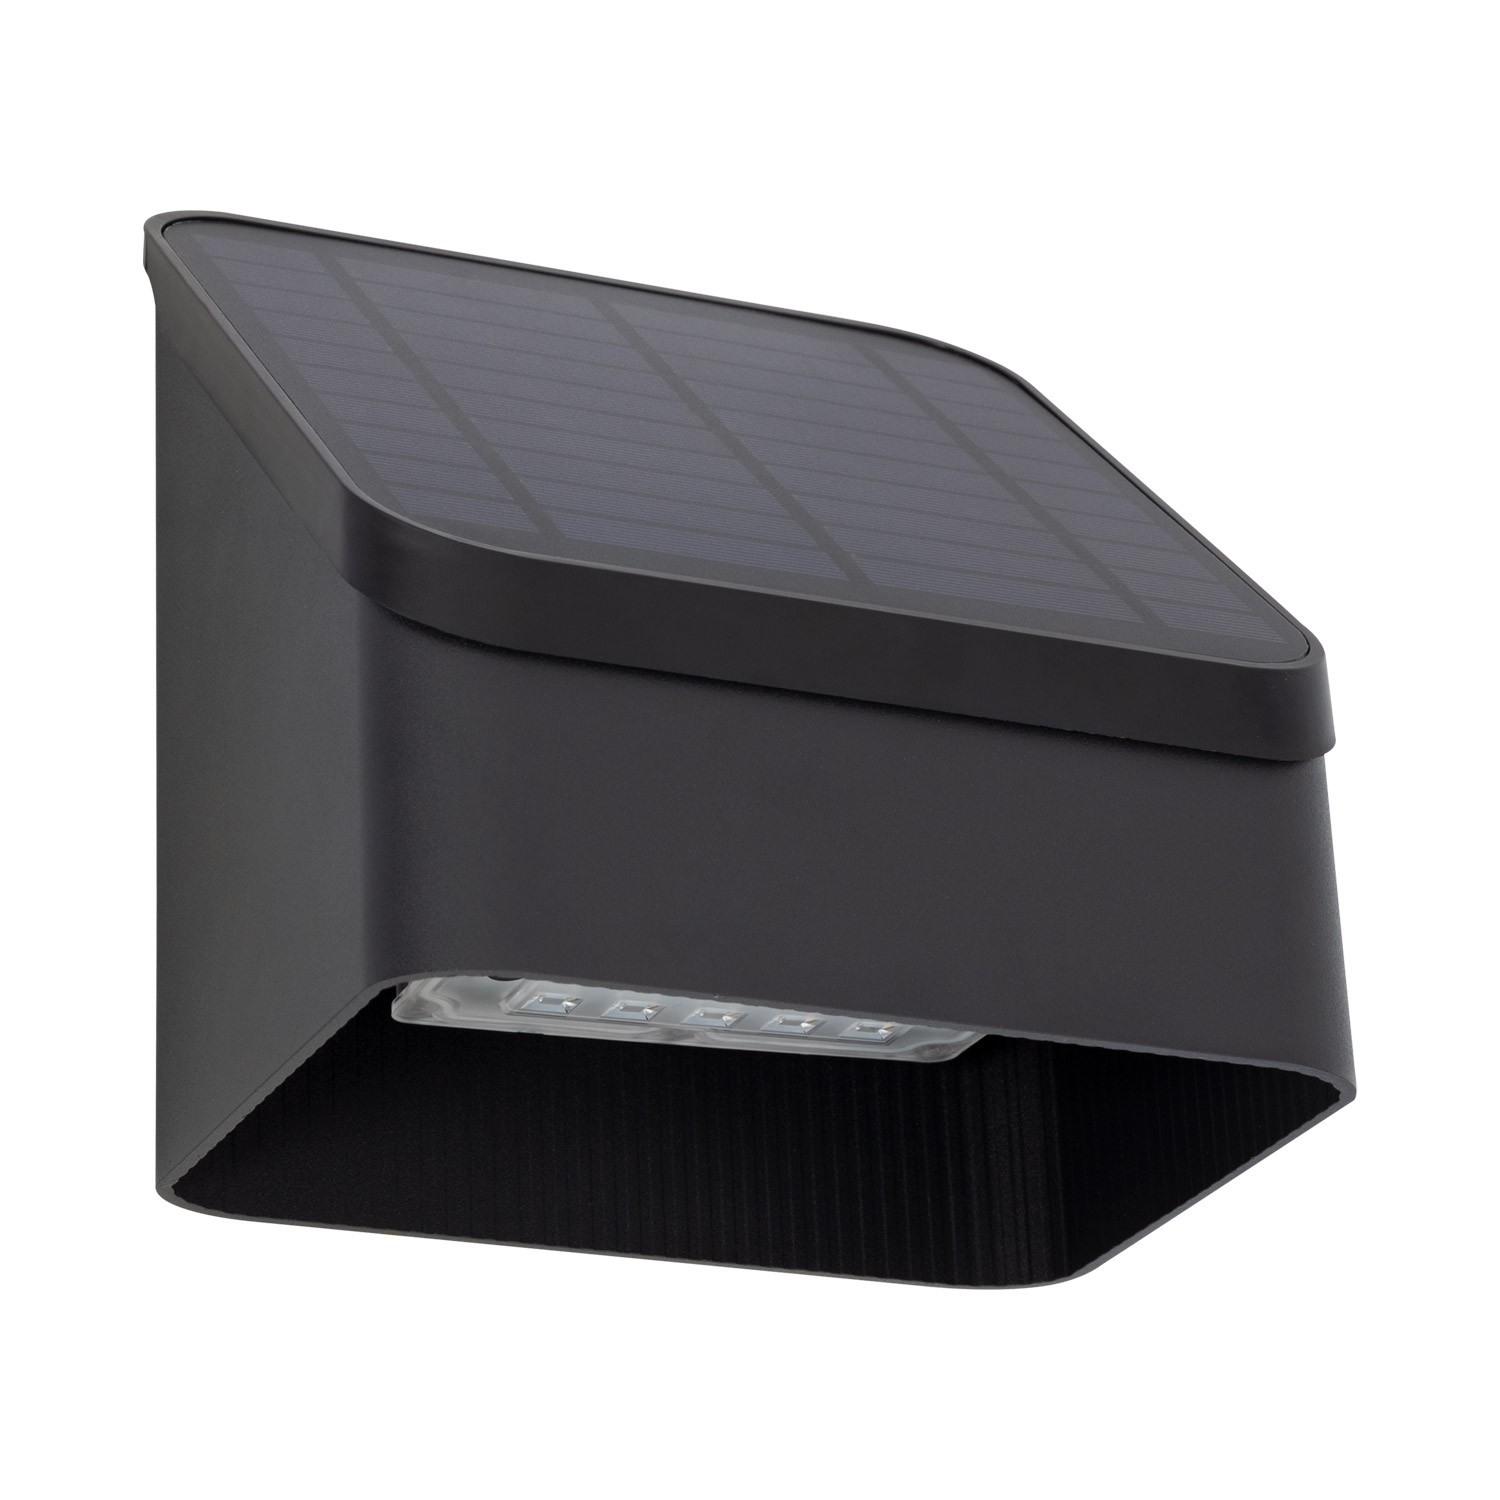 applique led solaire namib avec d tecteur mouvement radar ip65 ledkia france. Black Bedroom Furniture Sets. Home Design Ideas